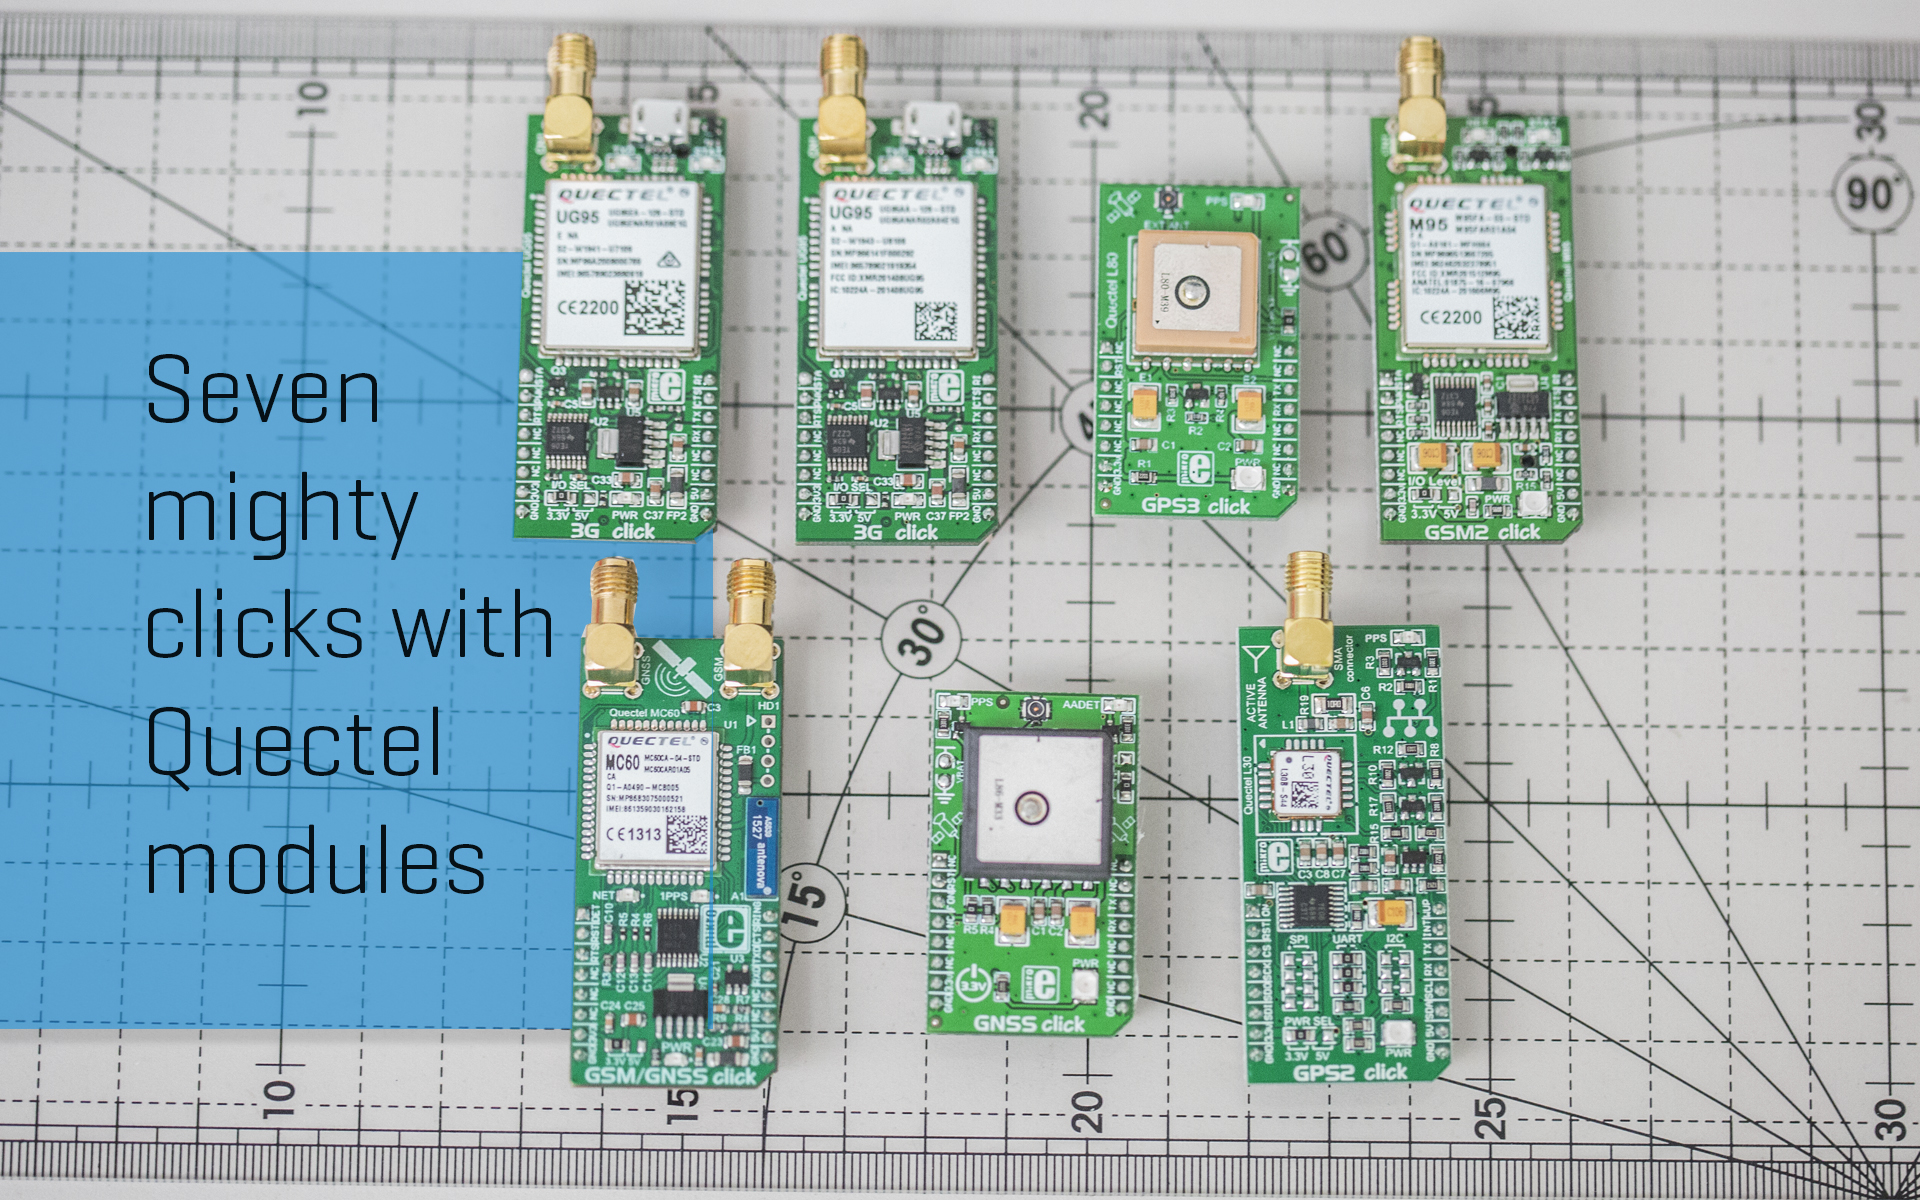 Seven mighty clicks with Quectel modules